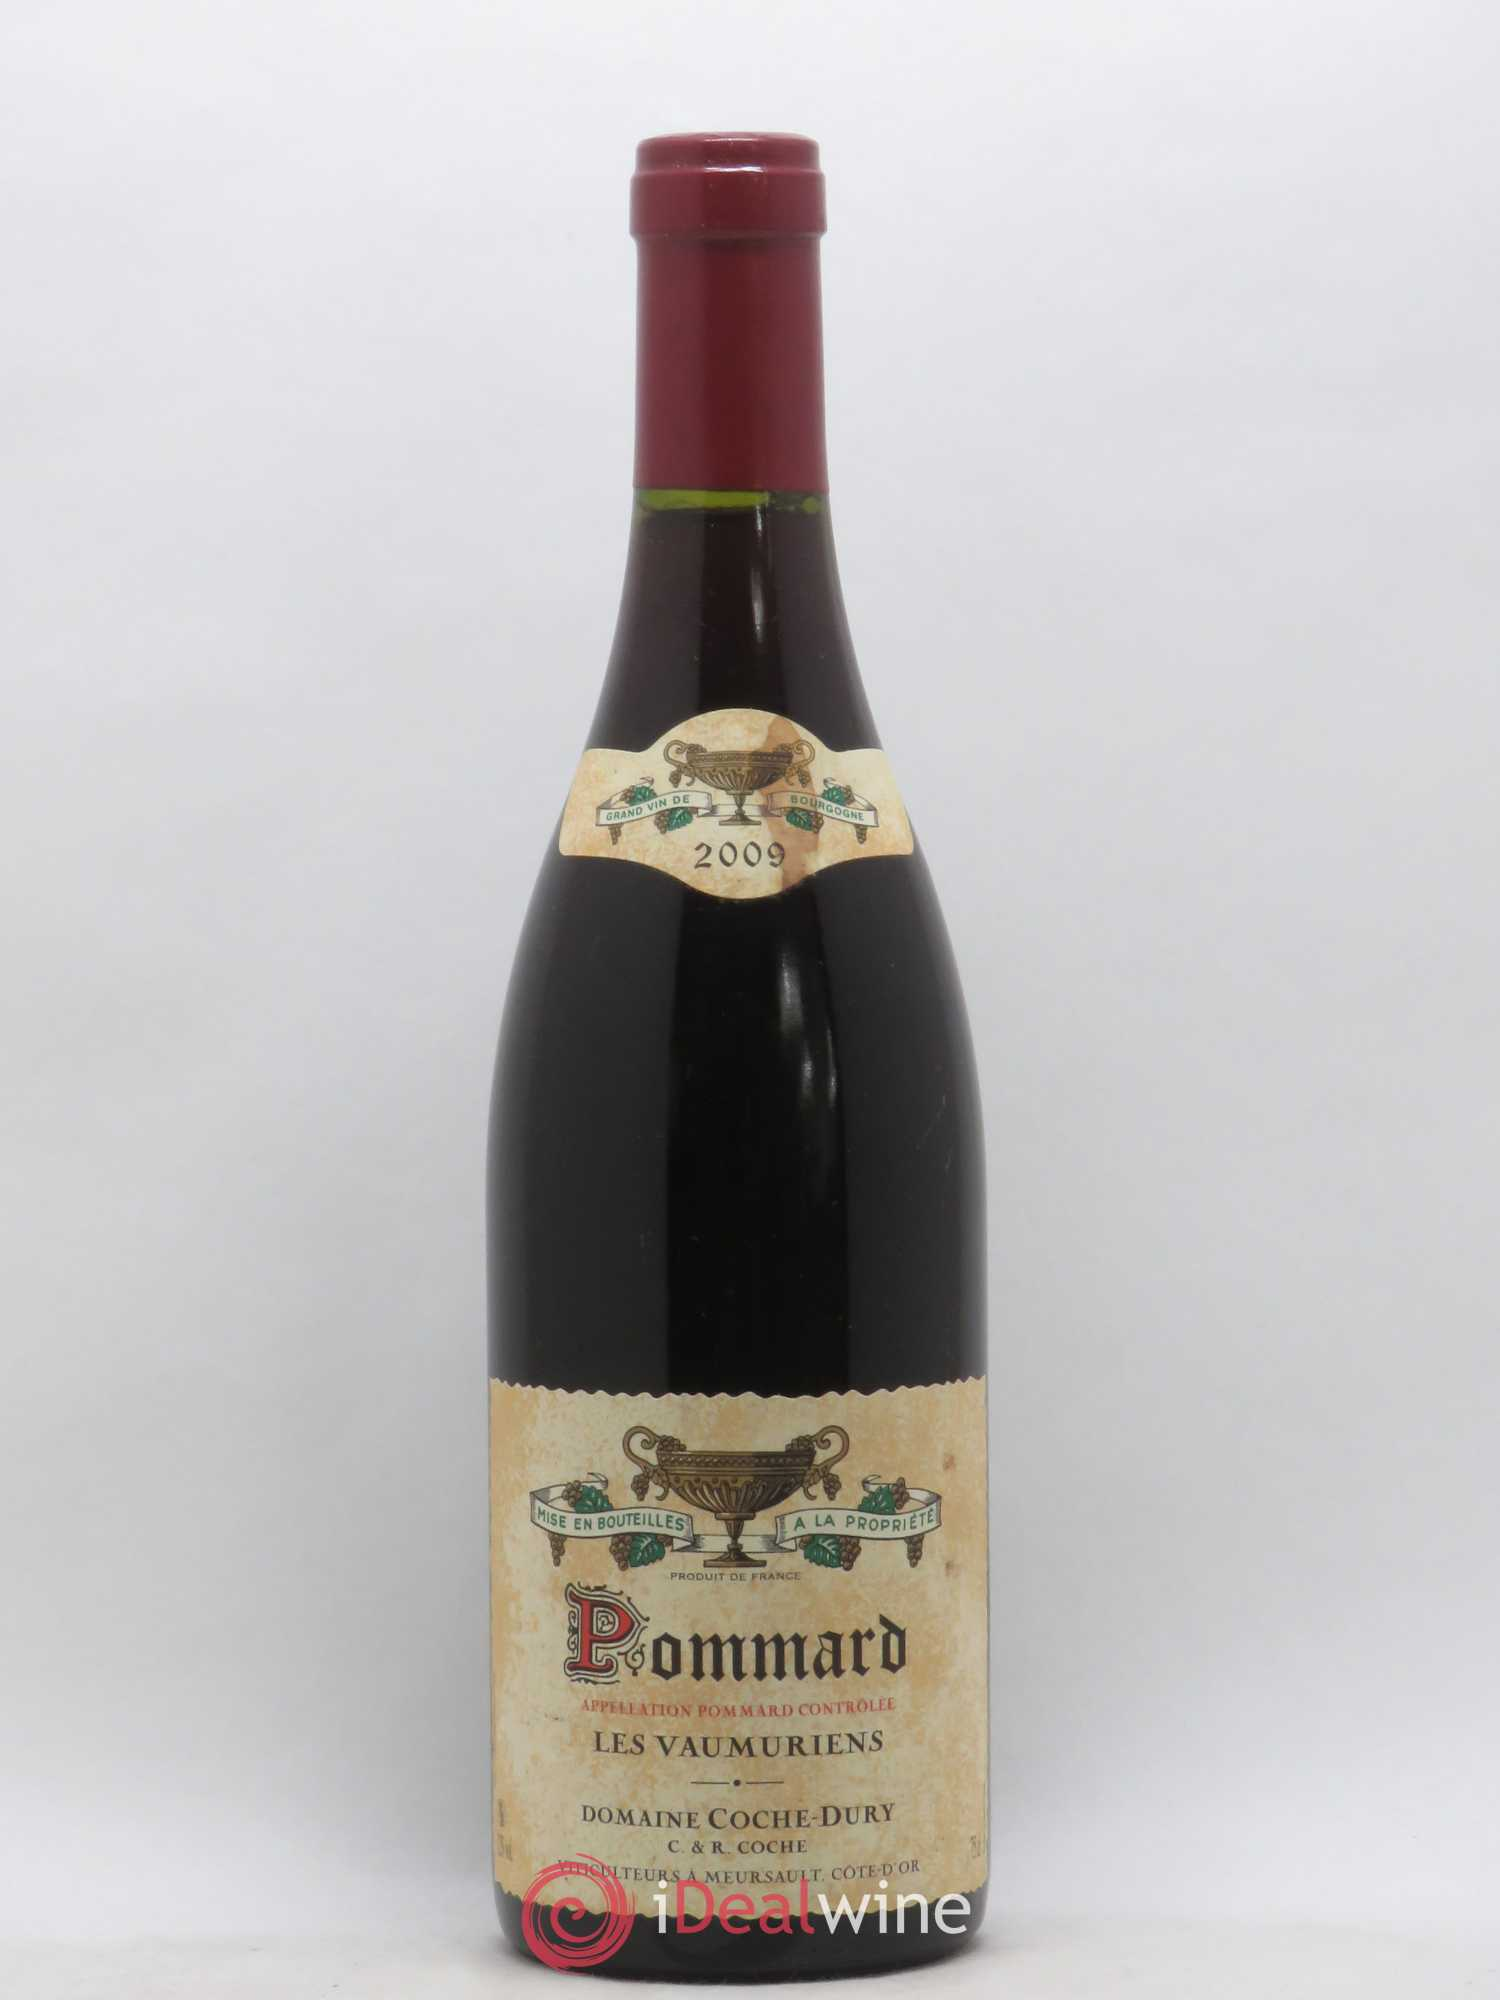 Pommard les Vaumuriens Coche Dury (Domaine)  2009 - Lot of 1 Bottle